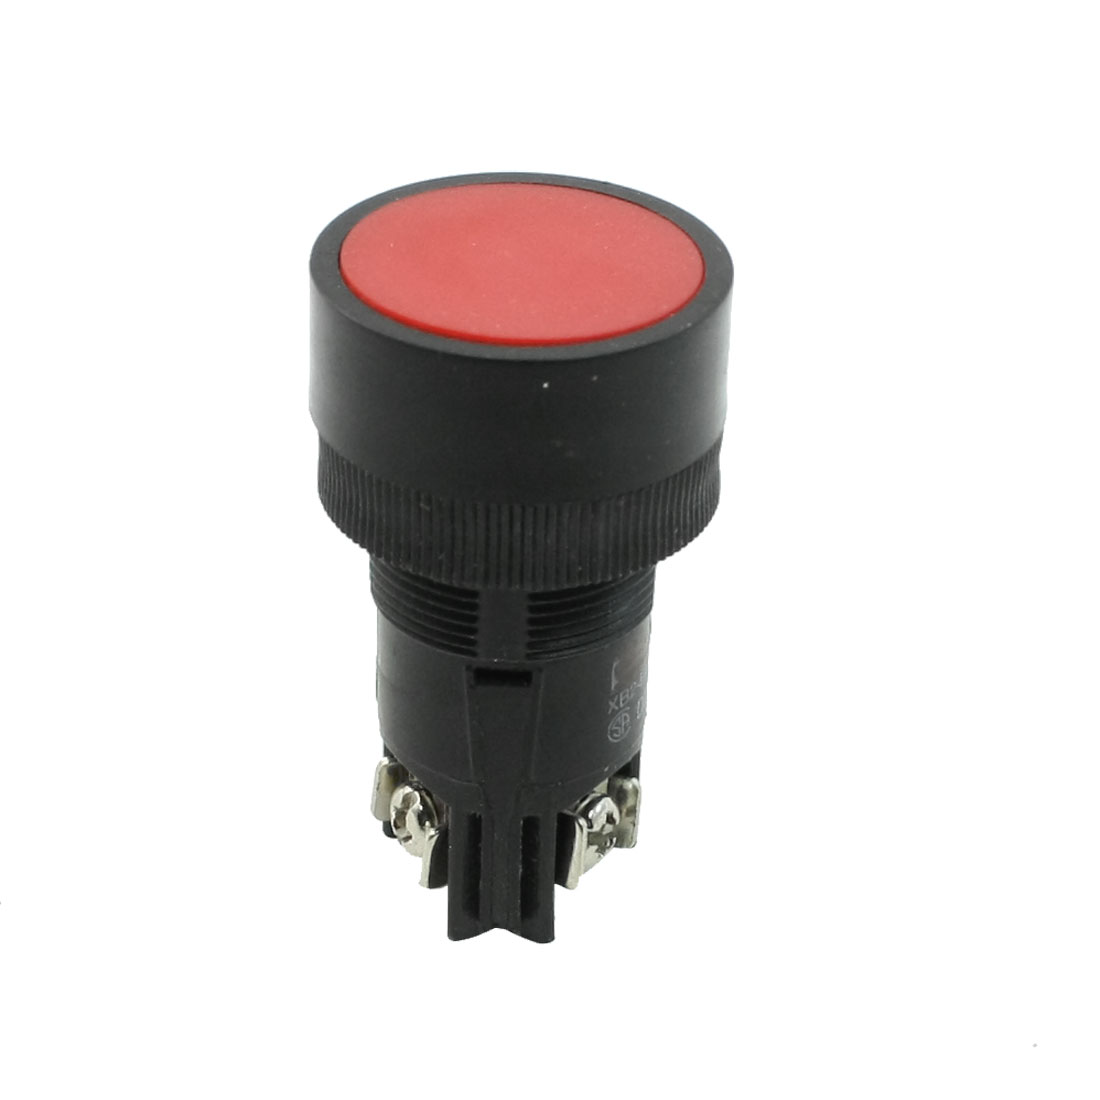 220-250V Volts 3A Red Flat Top 2 Terminals Momentary SPST Push Button Switch